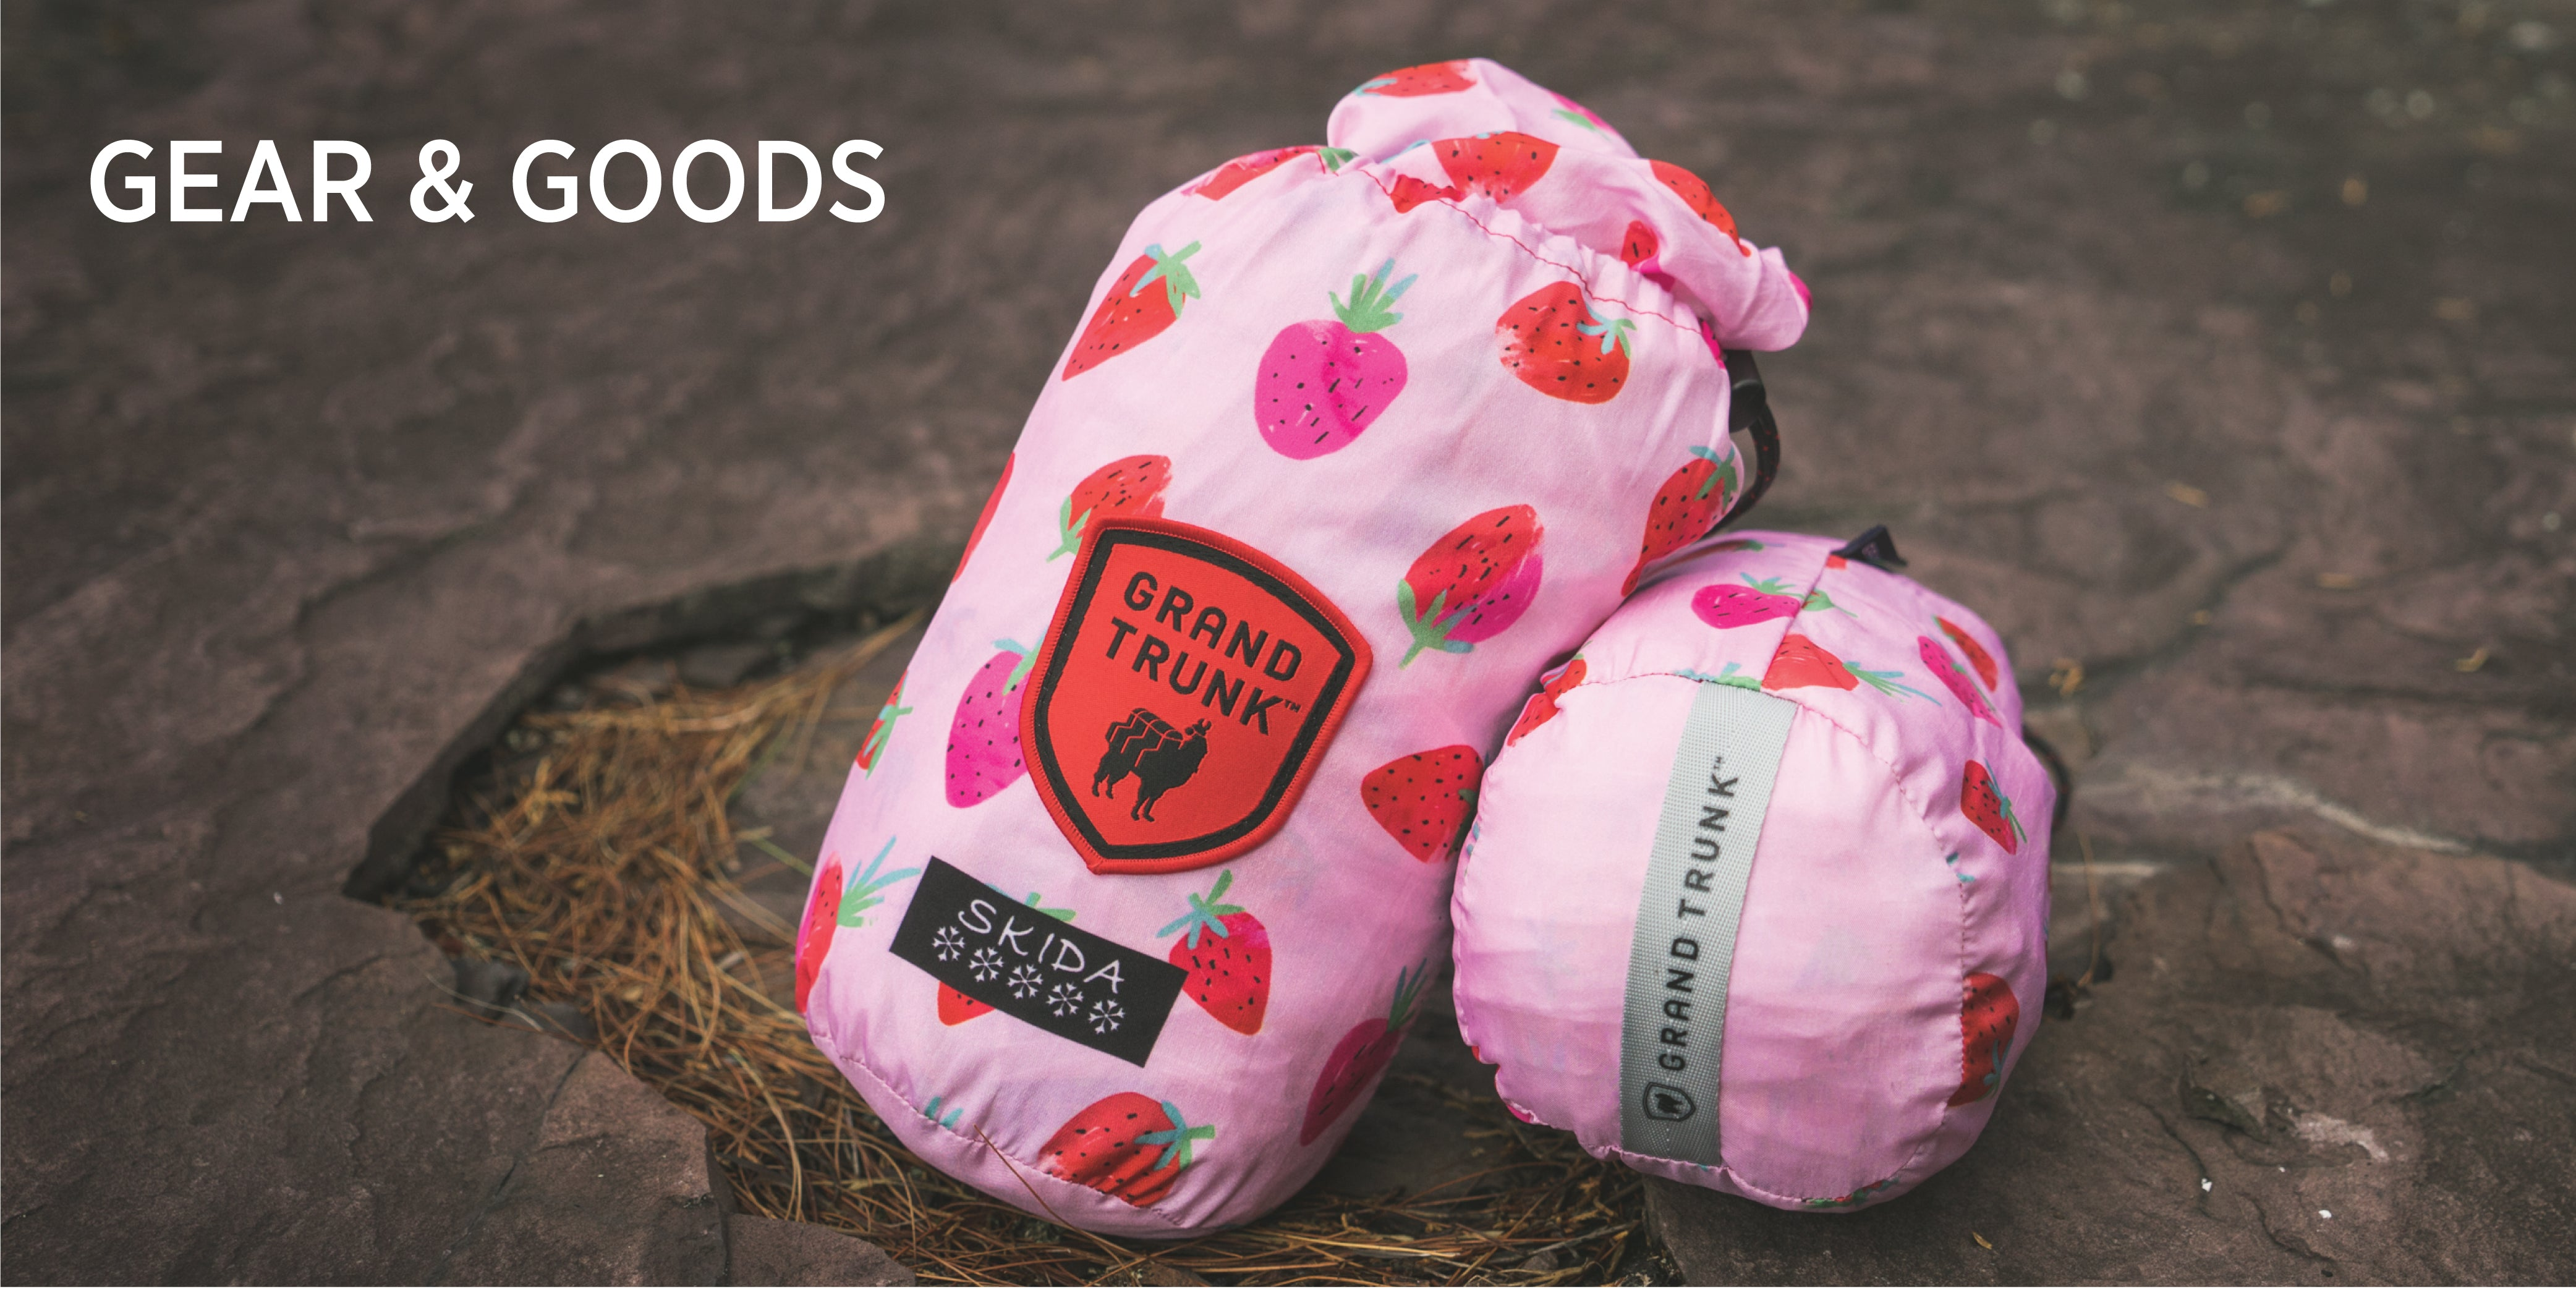 Skida Gear & Goods! Check out our Strawberry Fields-themed Hydroflasks and Grand Trunk Hammocks!